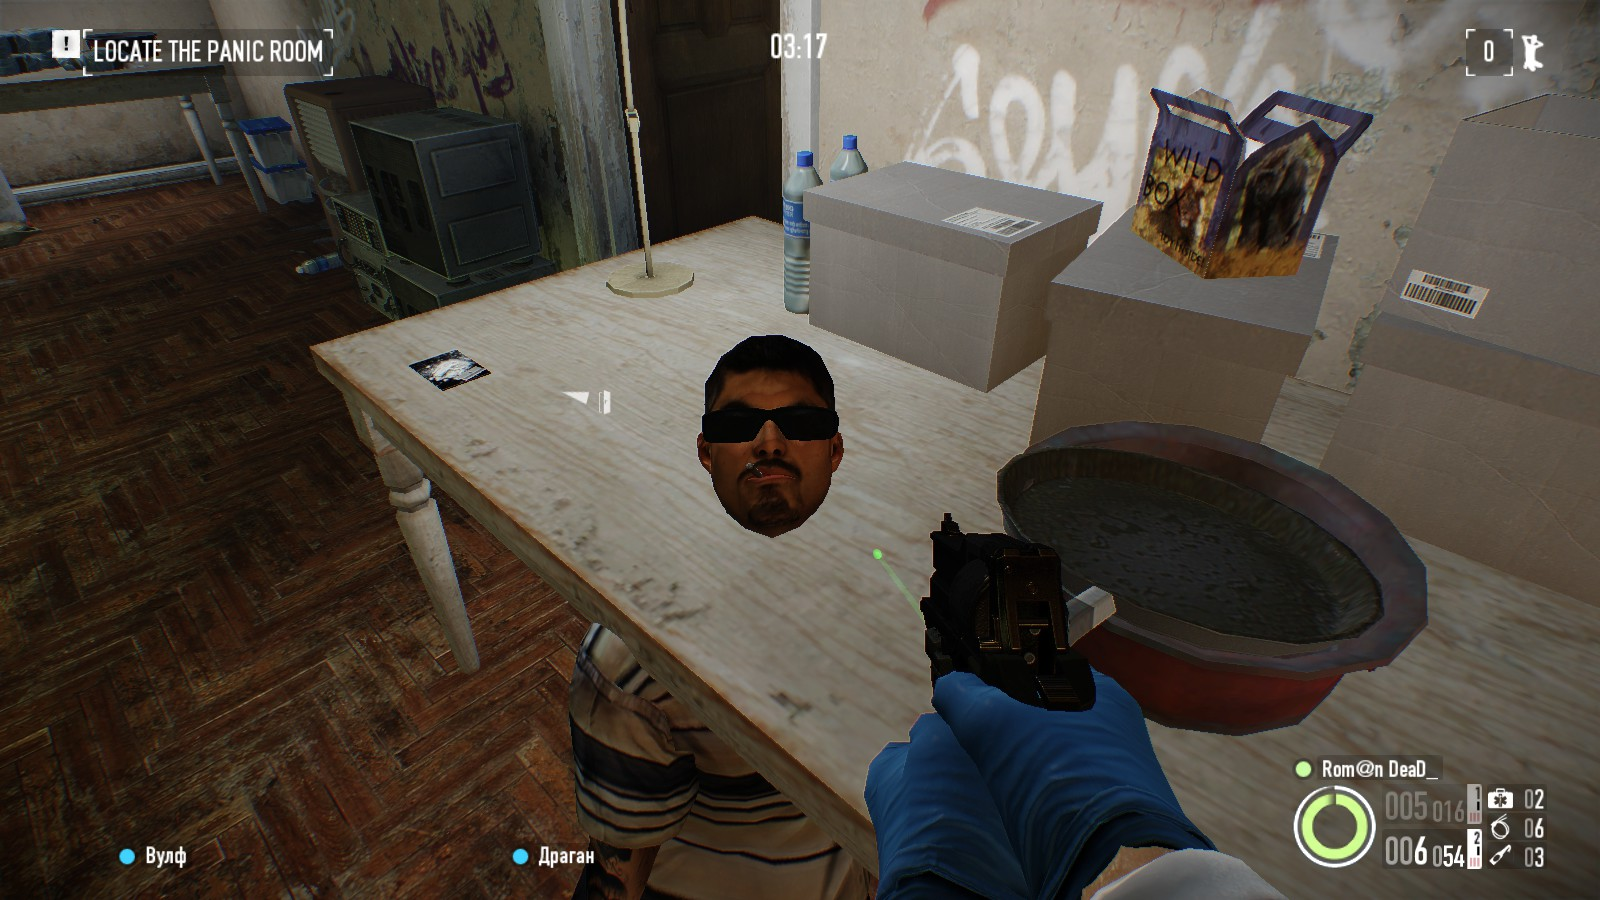 Imperturbable calm - Payday 2